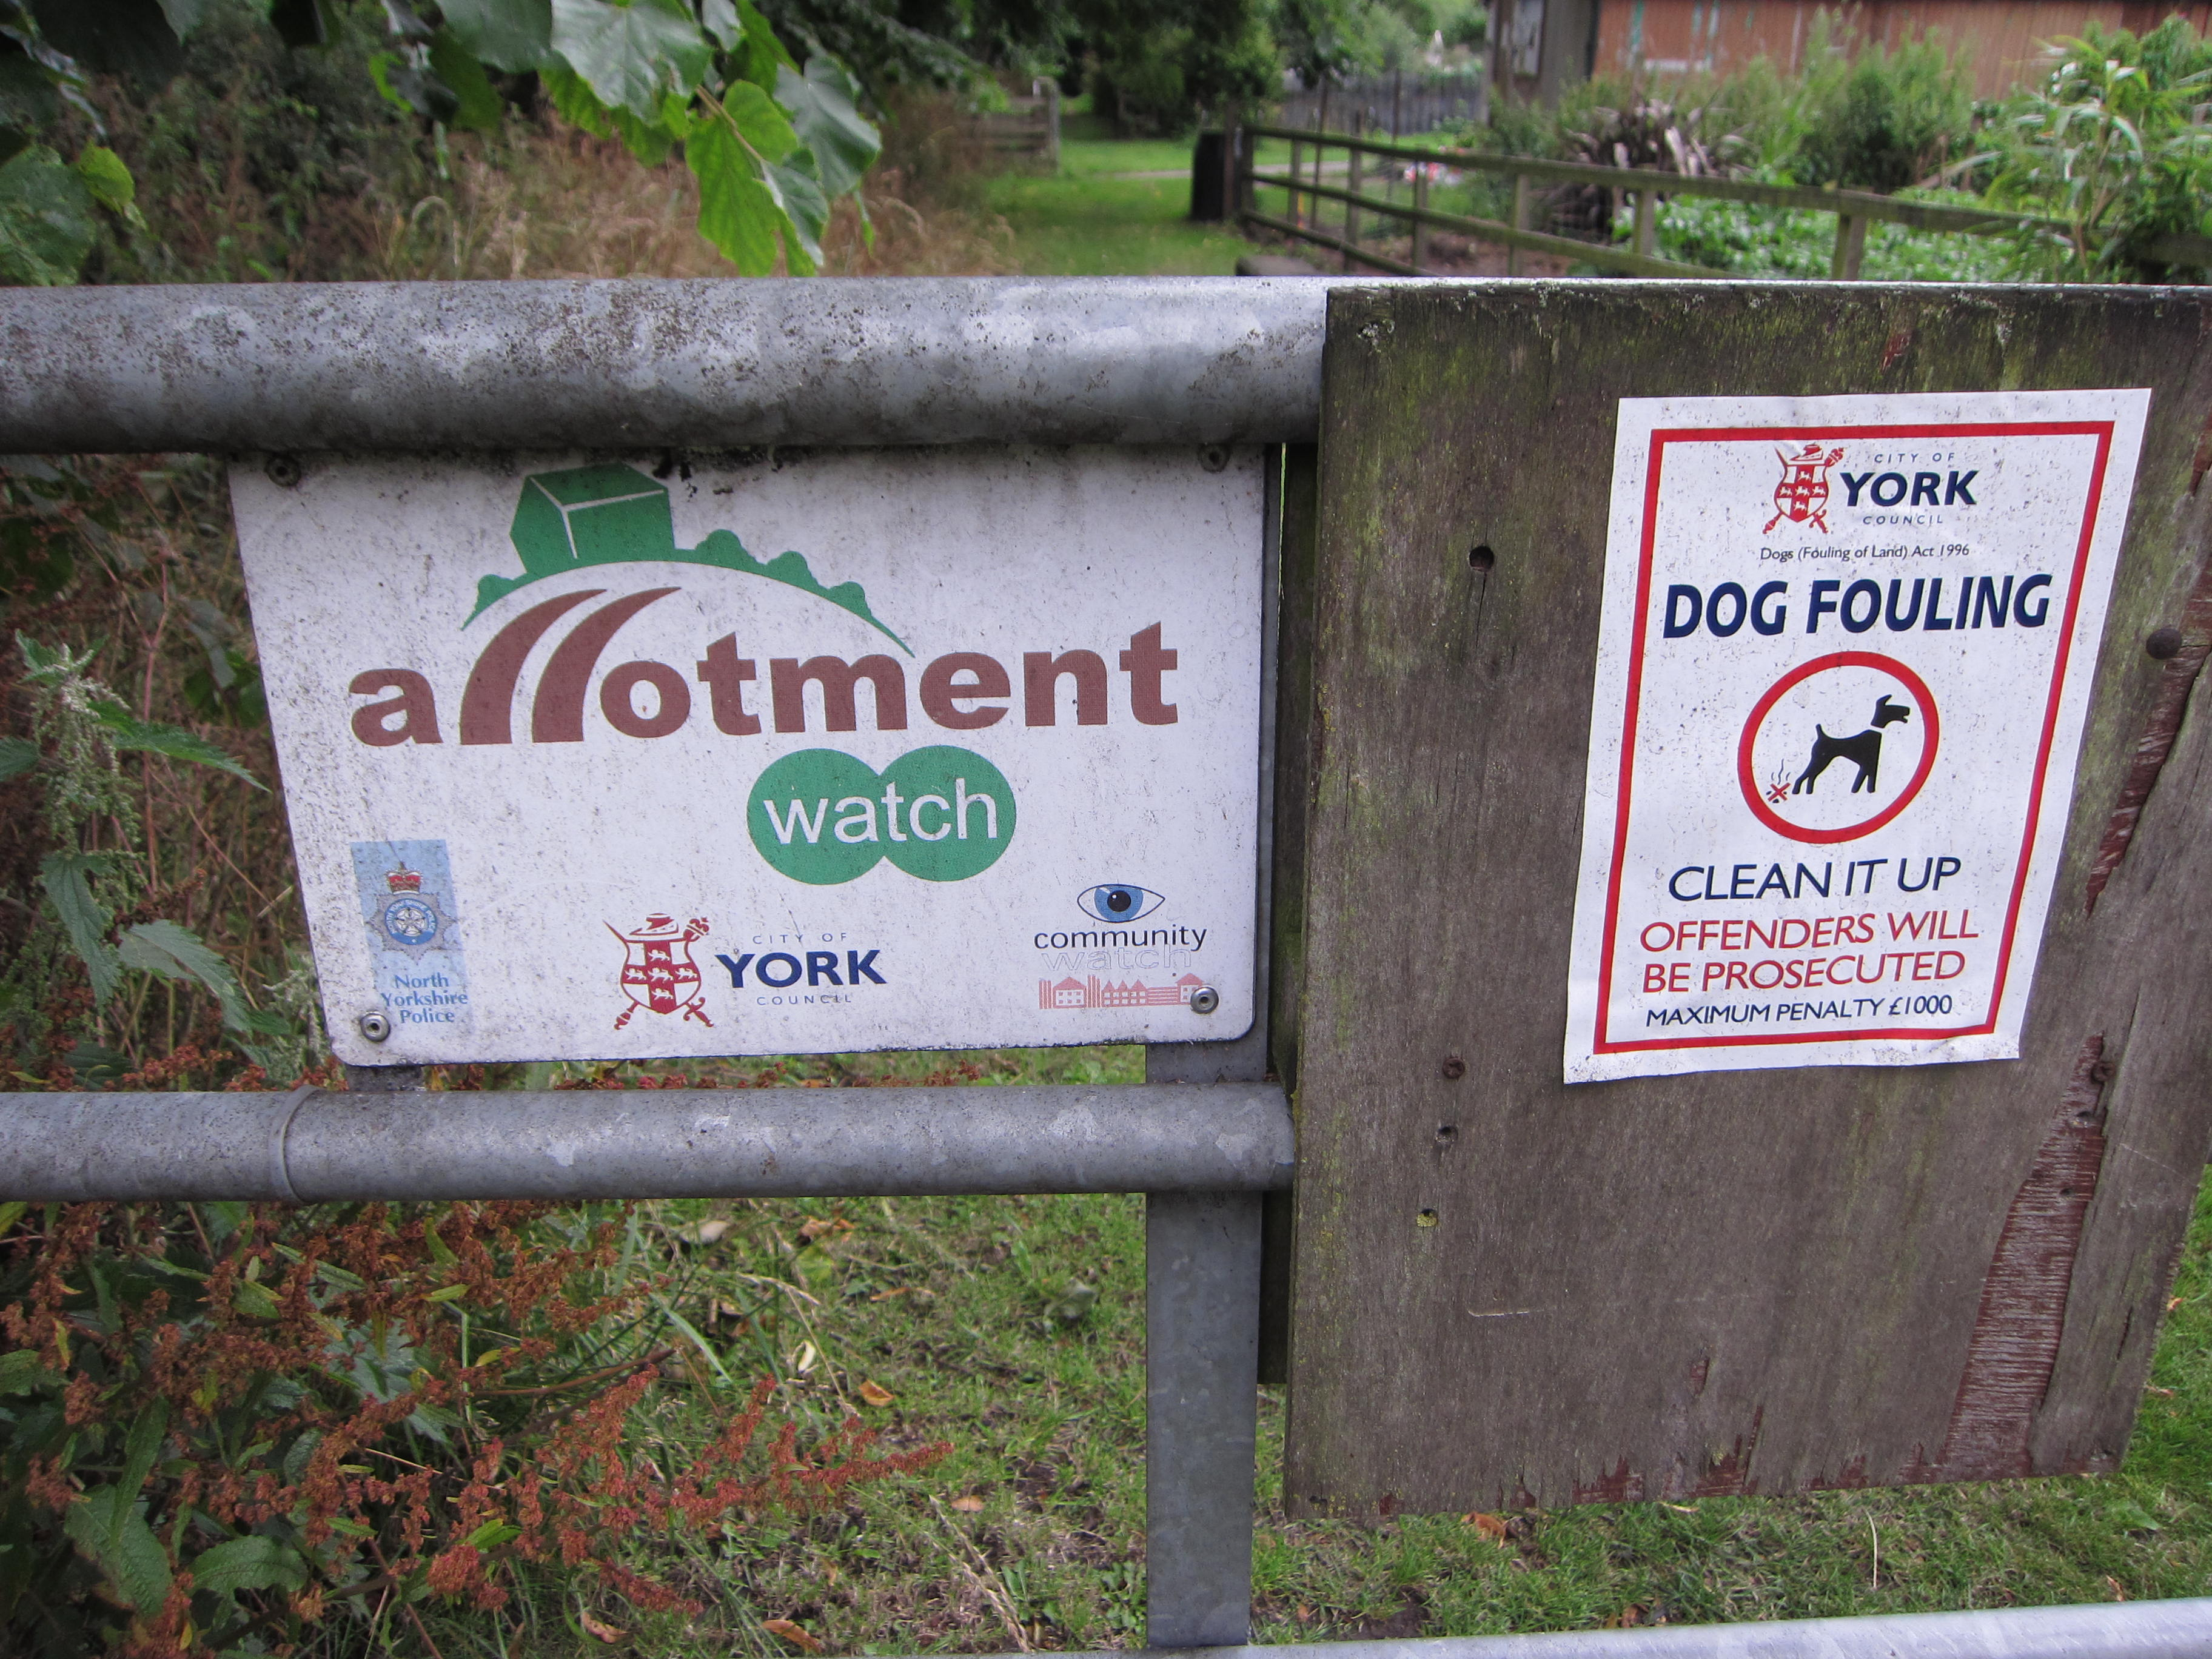 They call them allotments. We particularly liked the sign about dog fouling. So civilized.